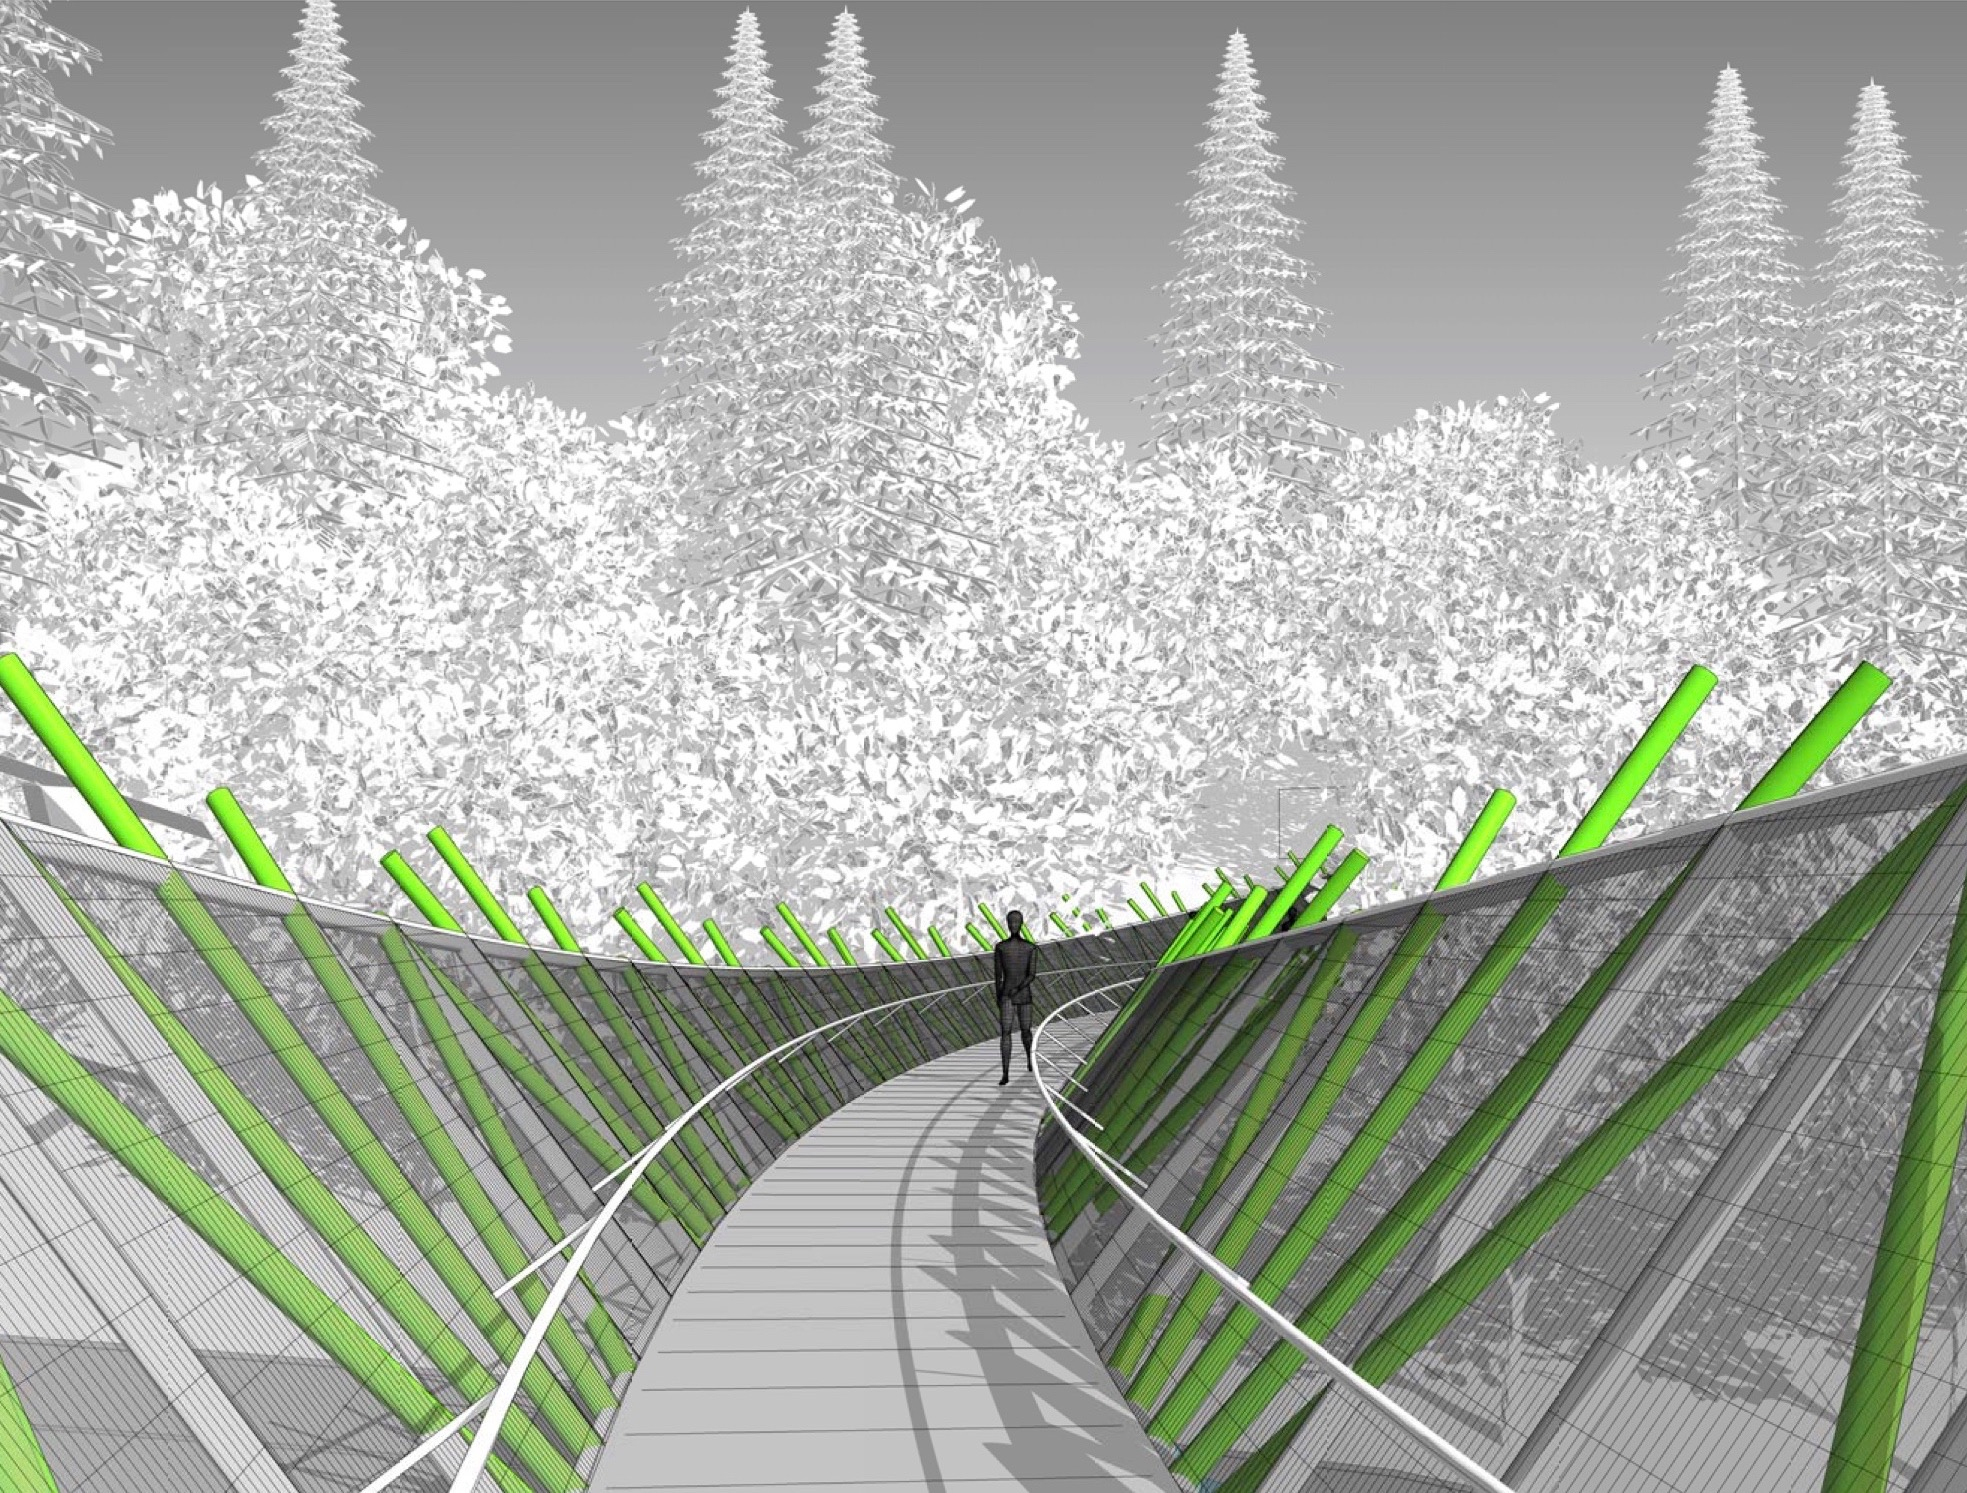 First person perspective of the proposed footbridge design.